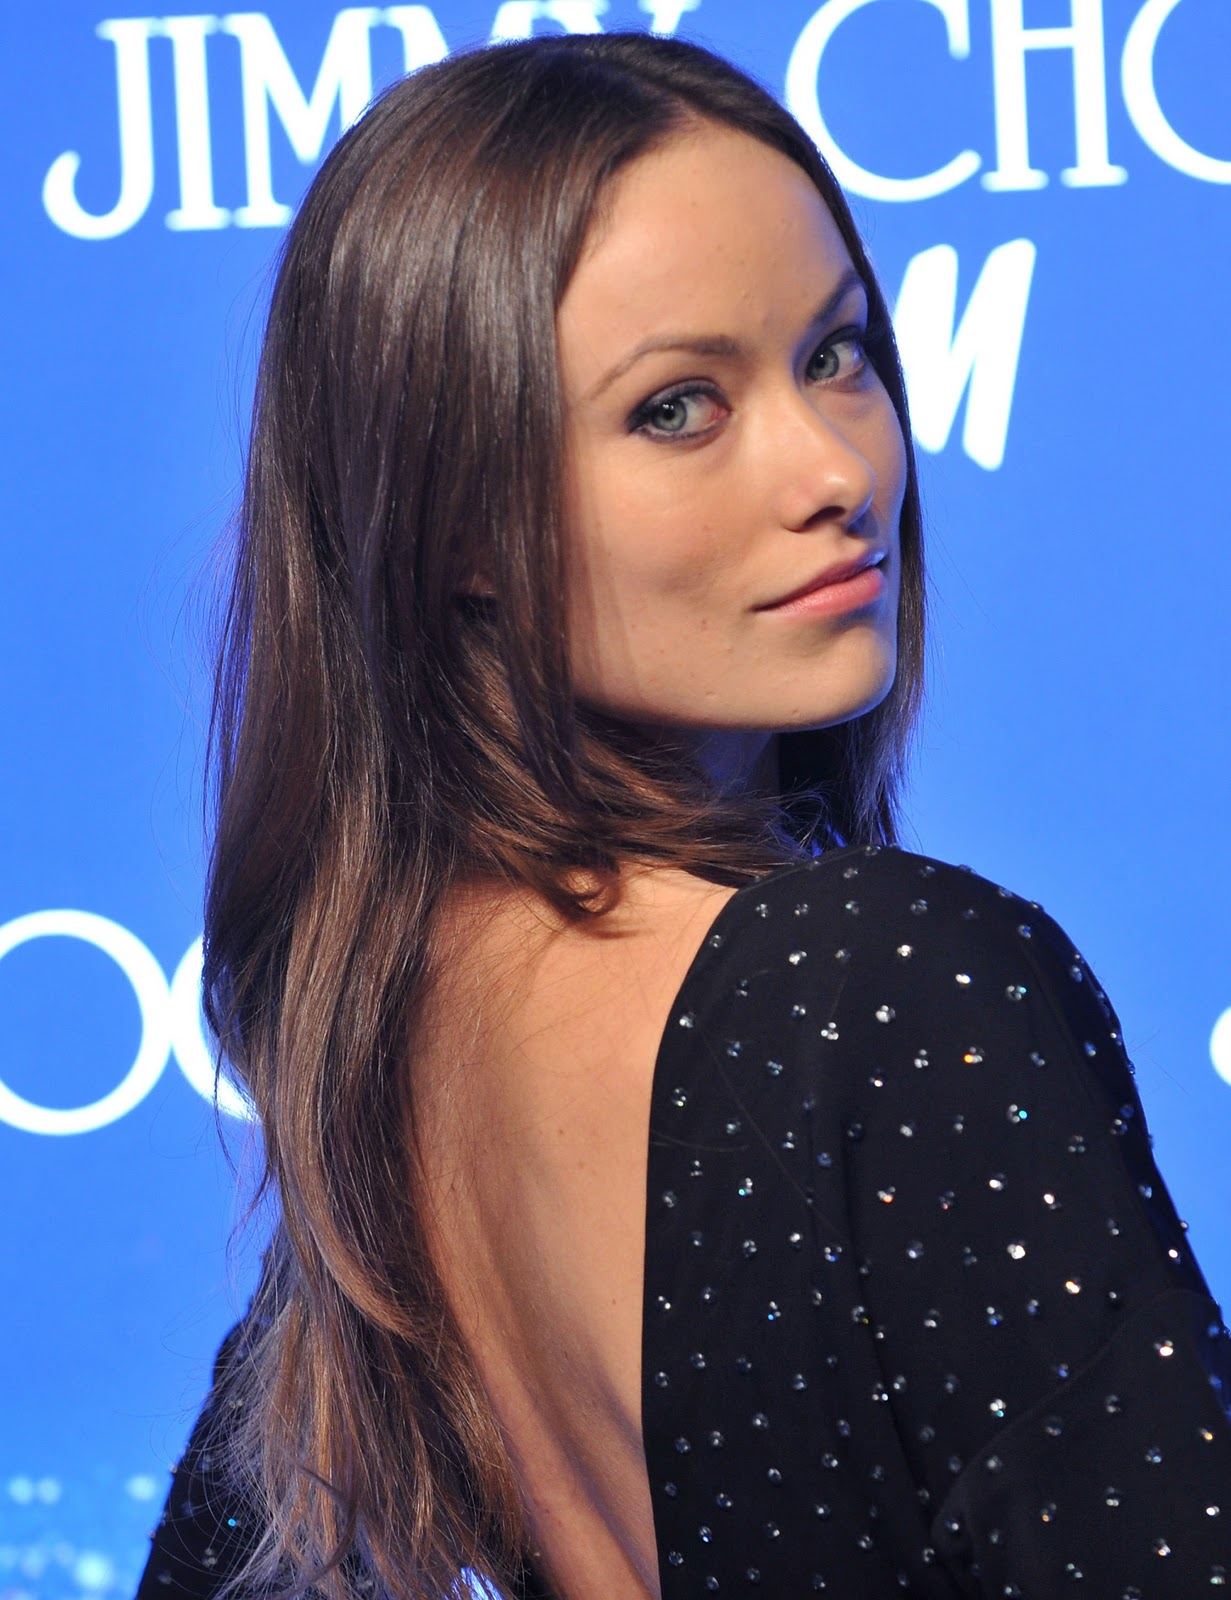 Olivia Wilde Profile And New Pictures 2013: Olivia Wilde Pictures Gallery (15)